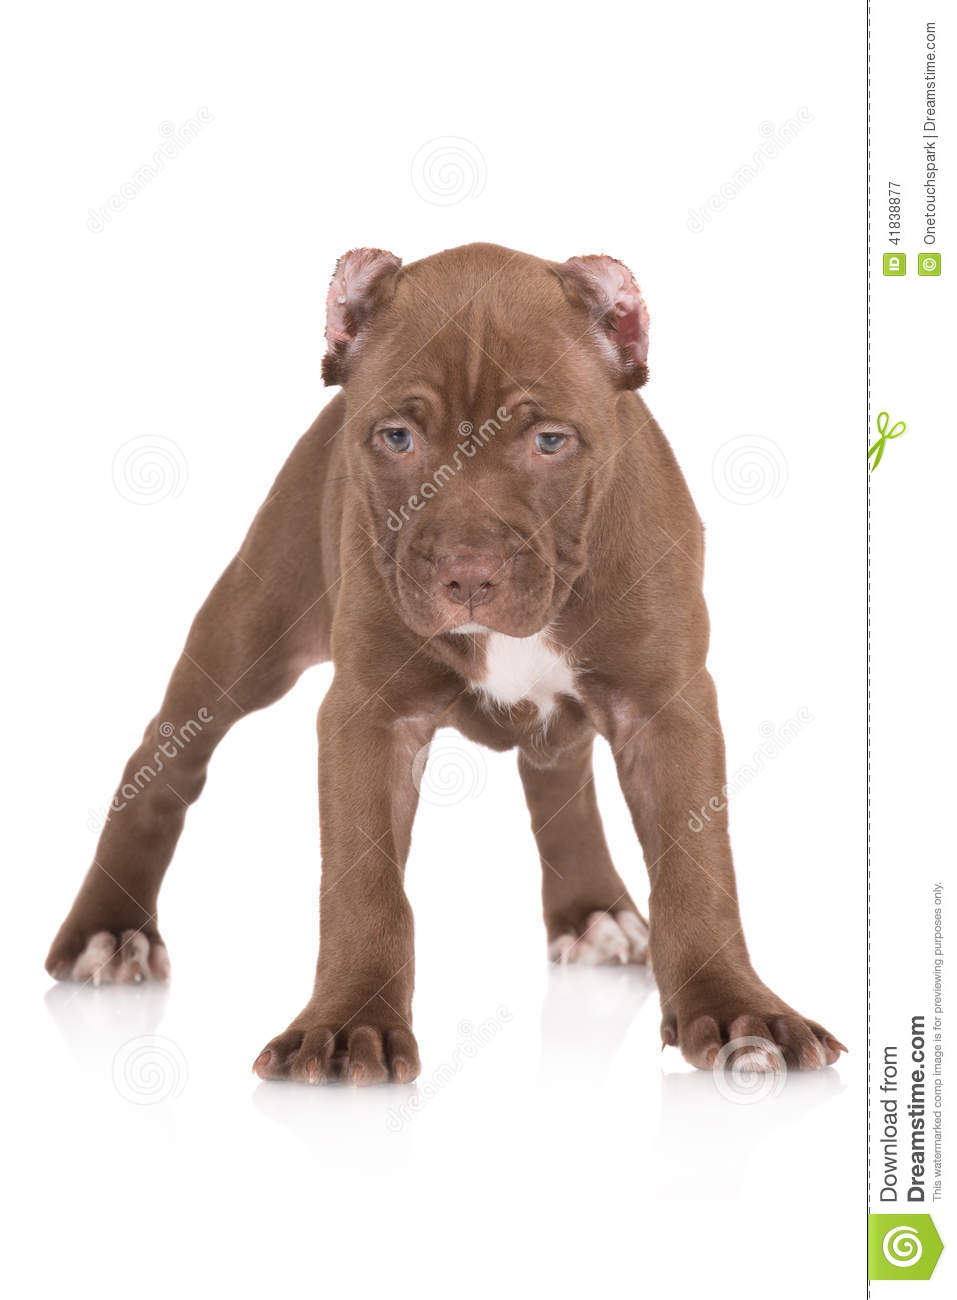 Adorable Chocolate Brown Pit Bull Puppy Stock Photo ...